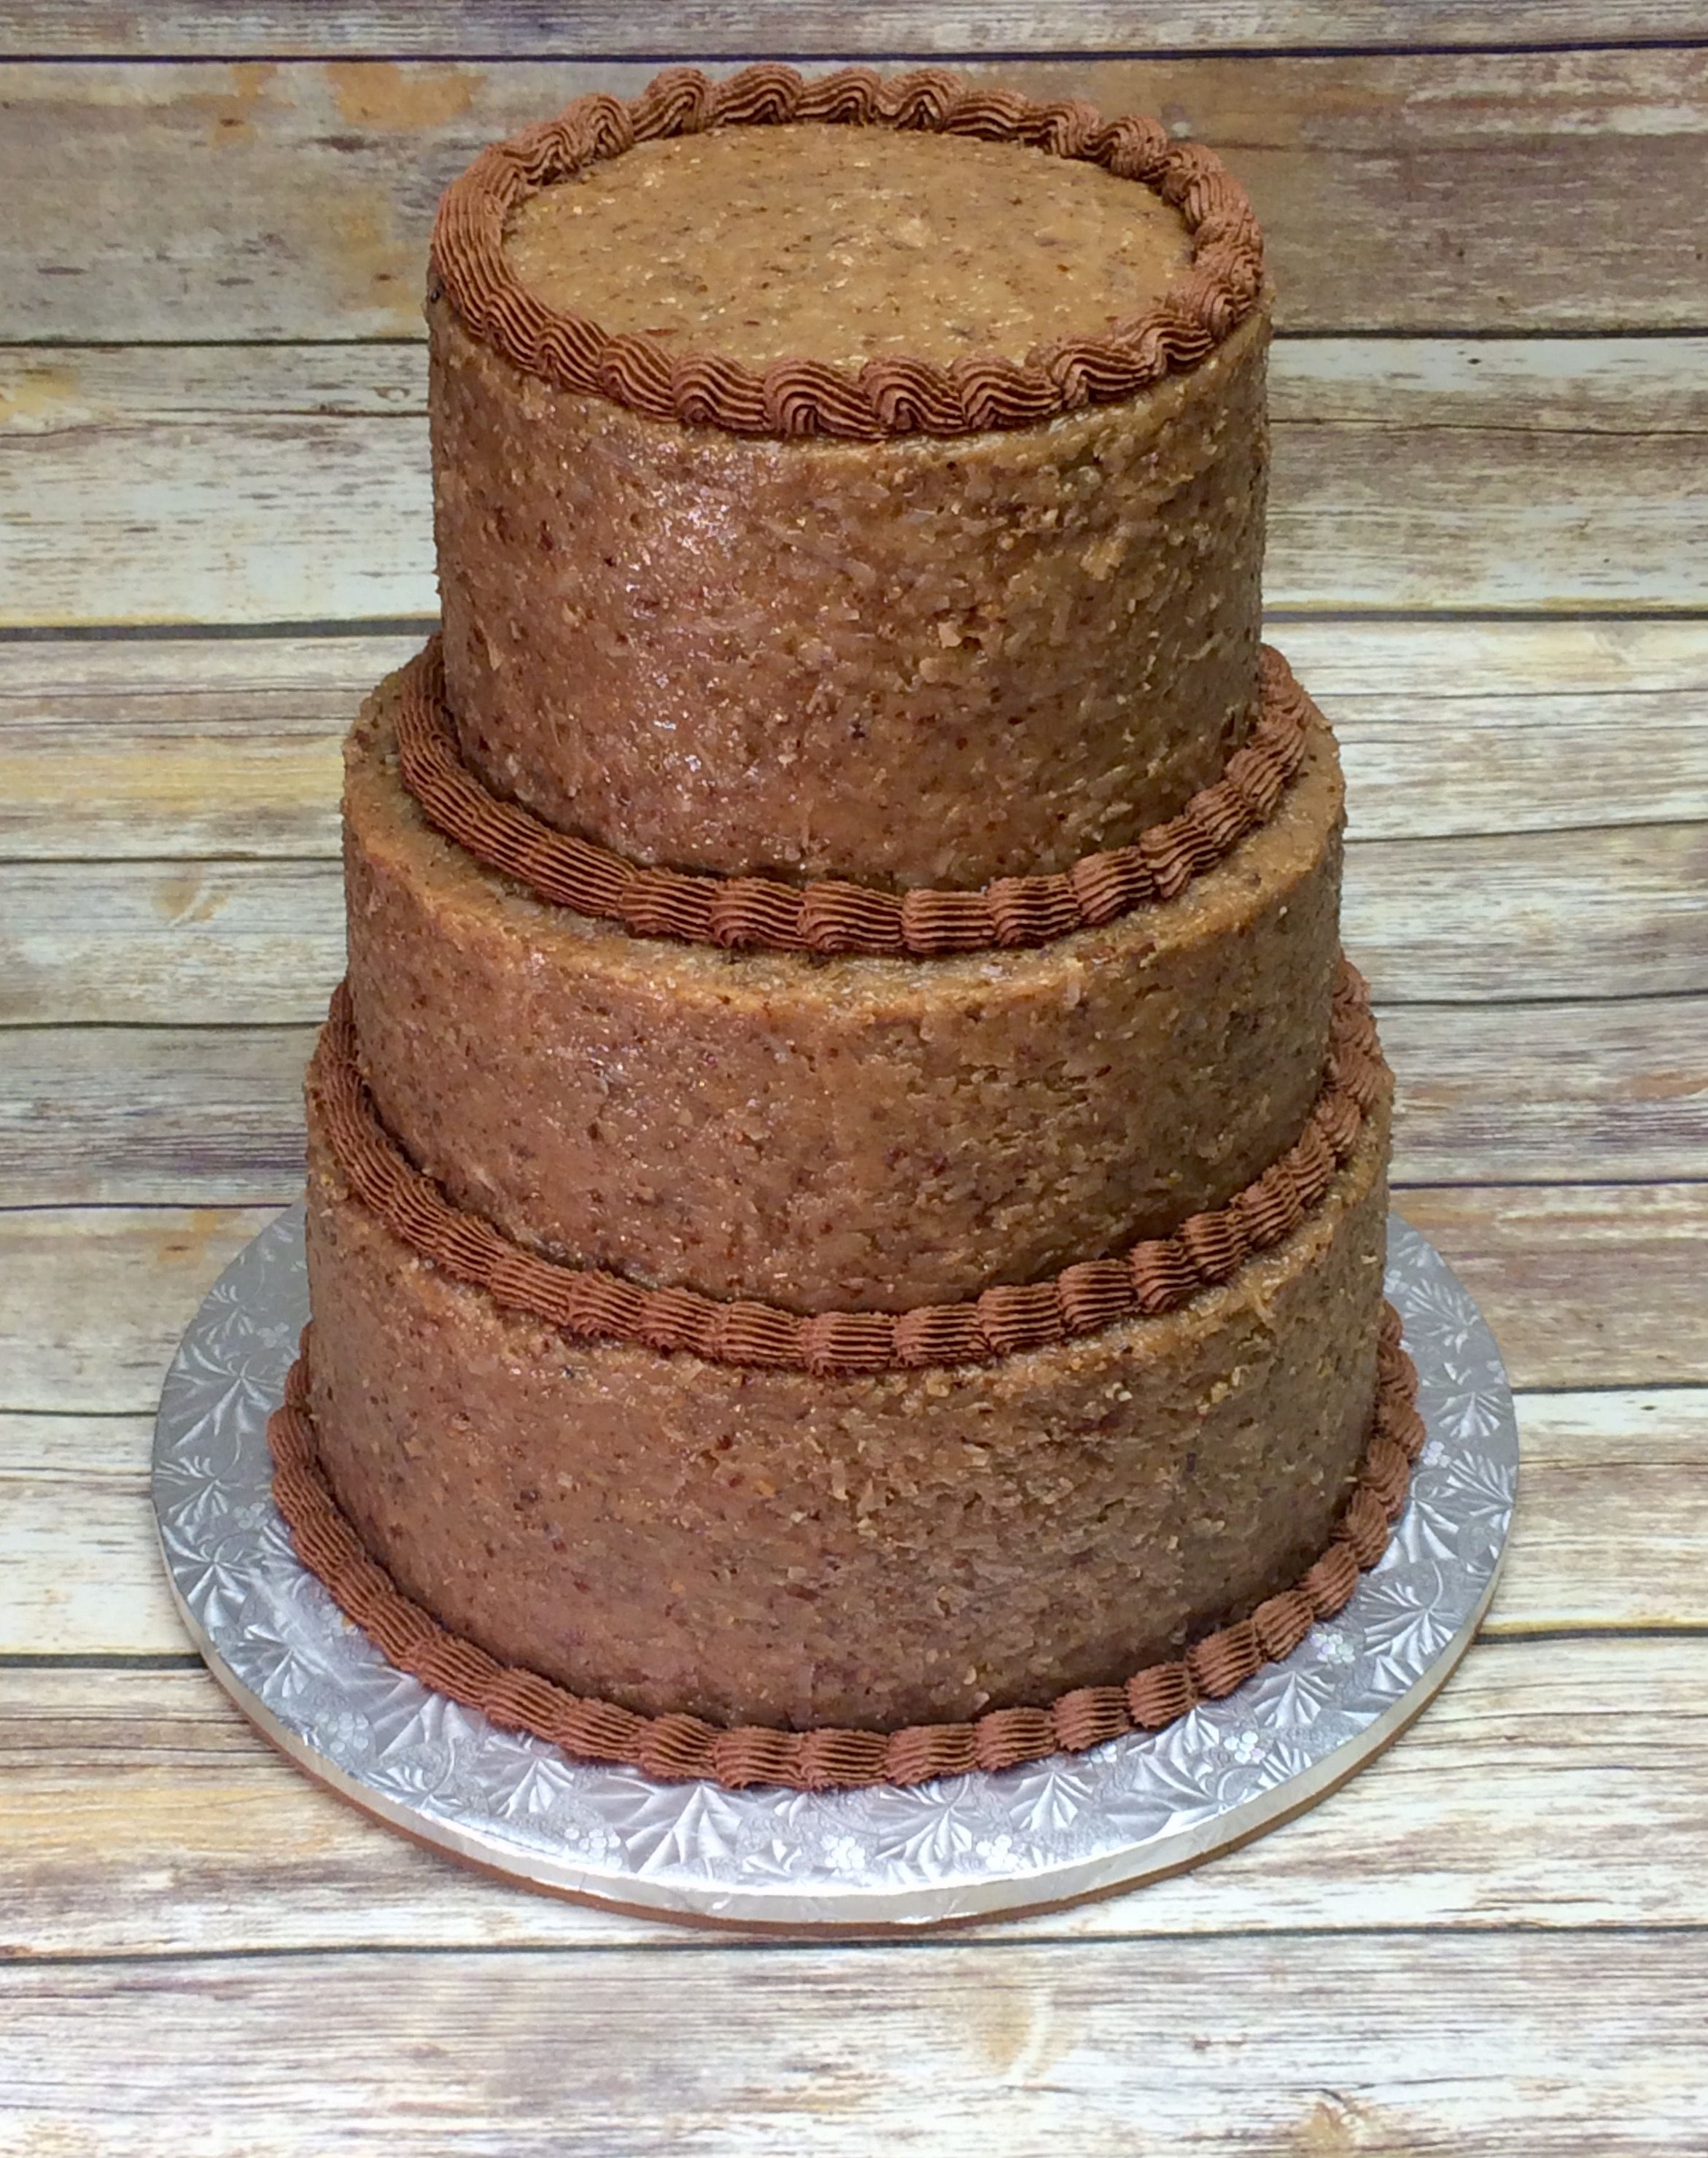 8 10 12 3 Tiered German Chocolate Grooms Cake With